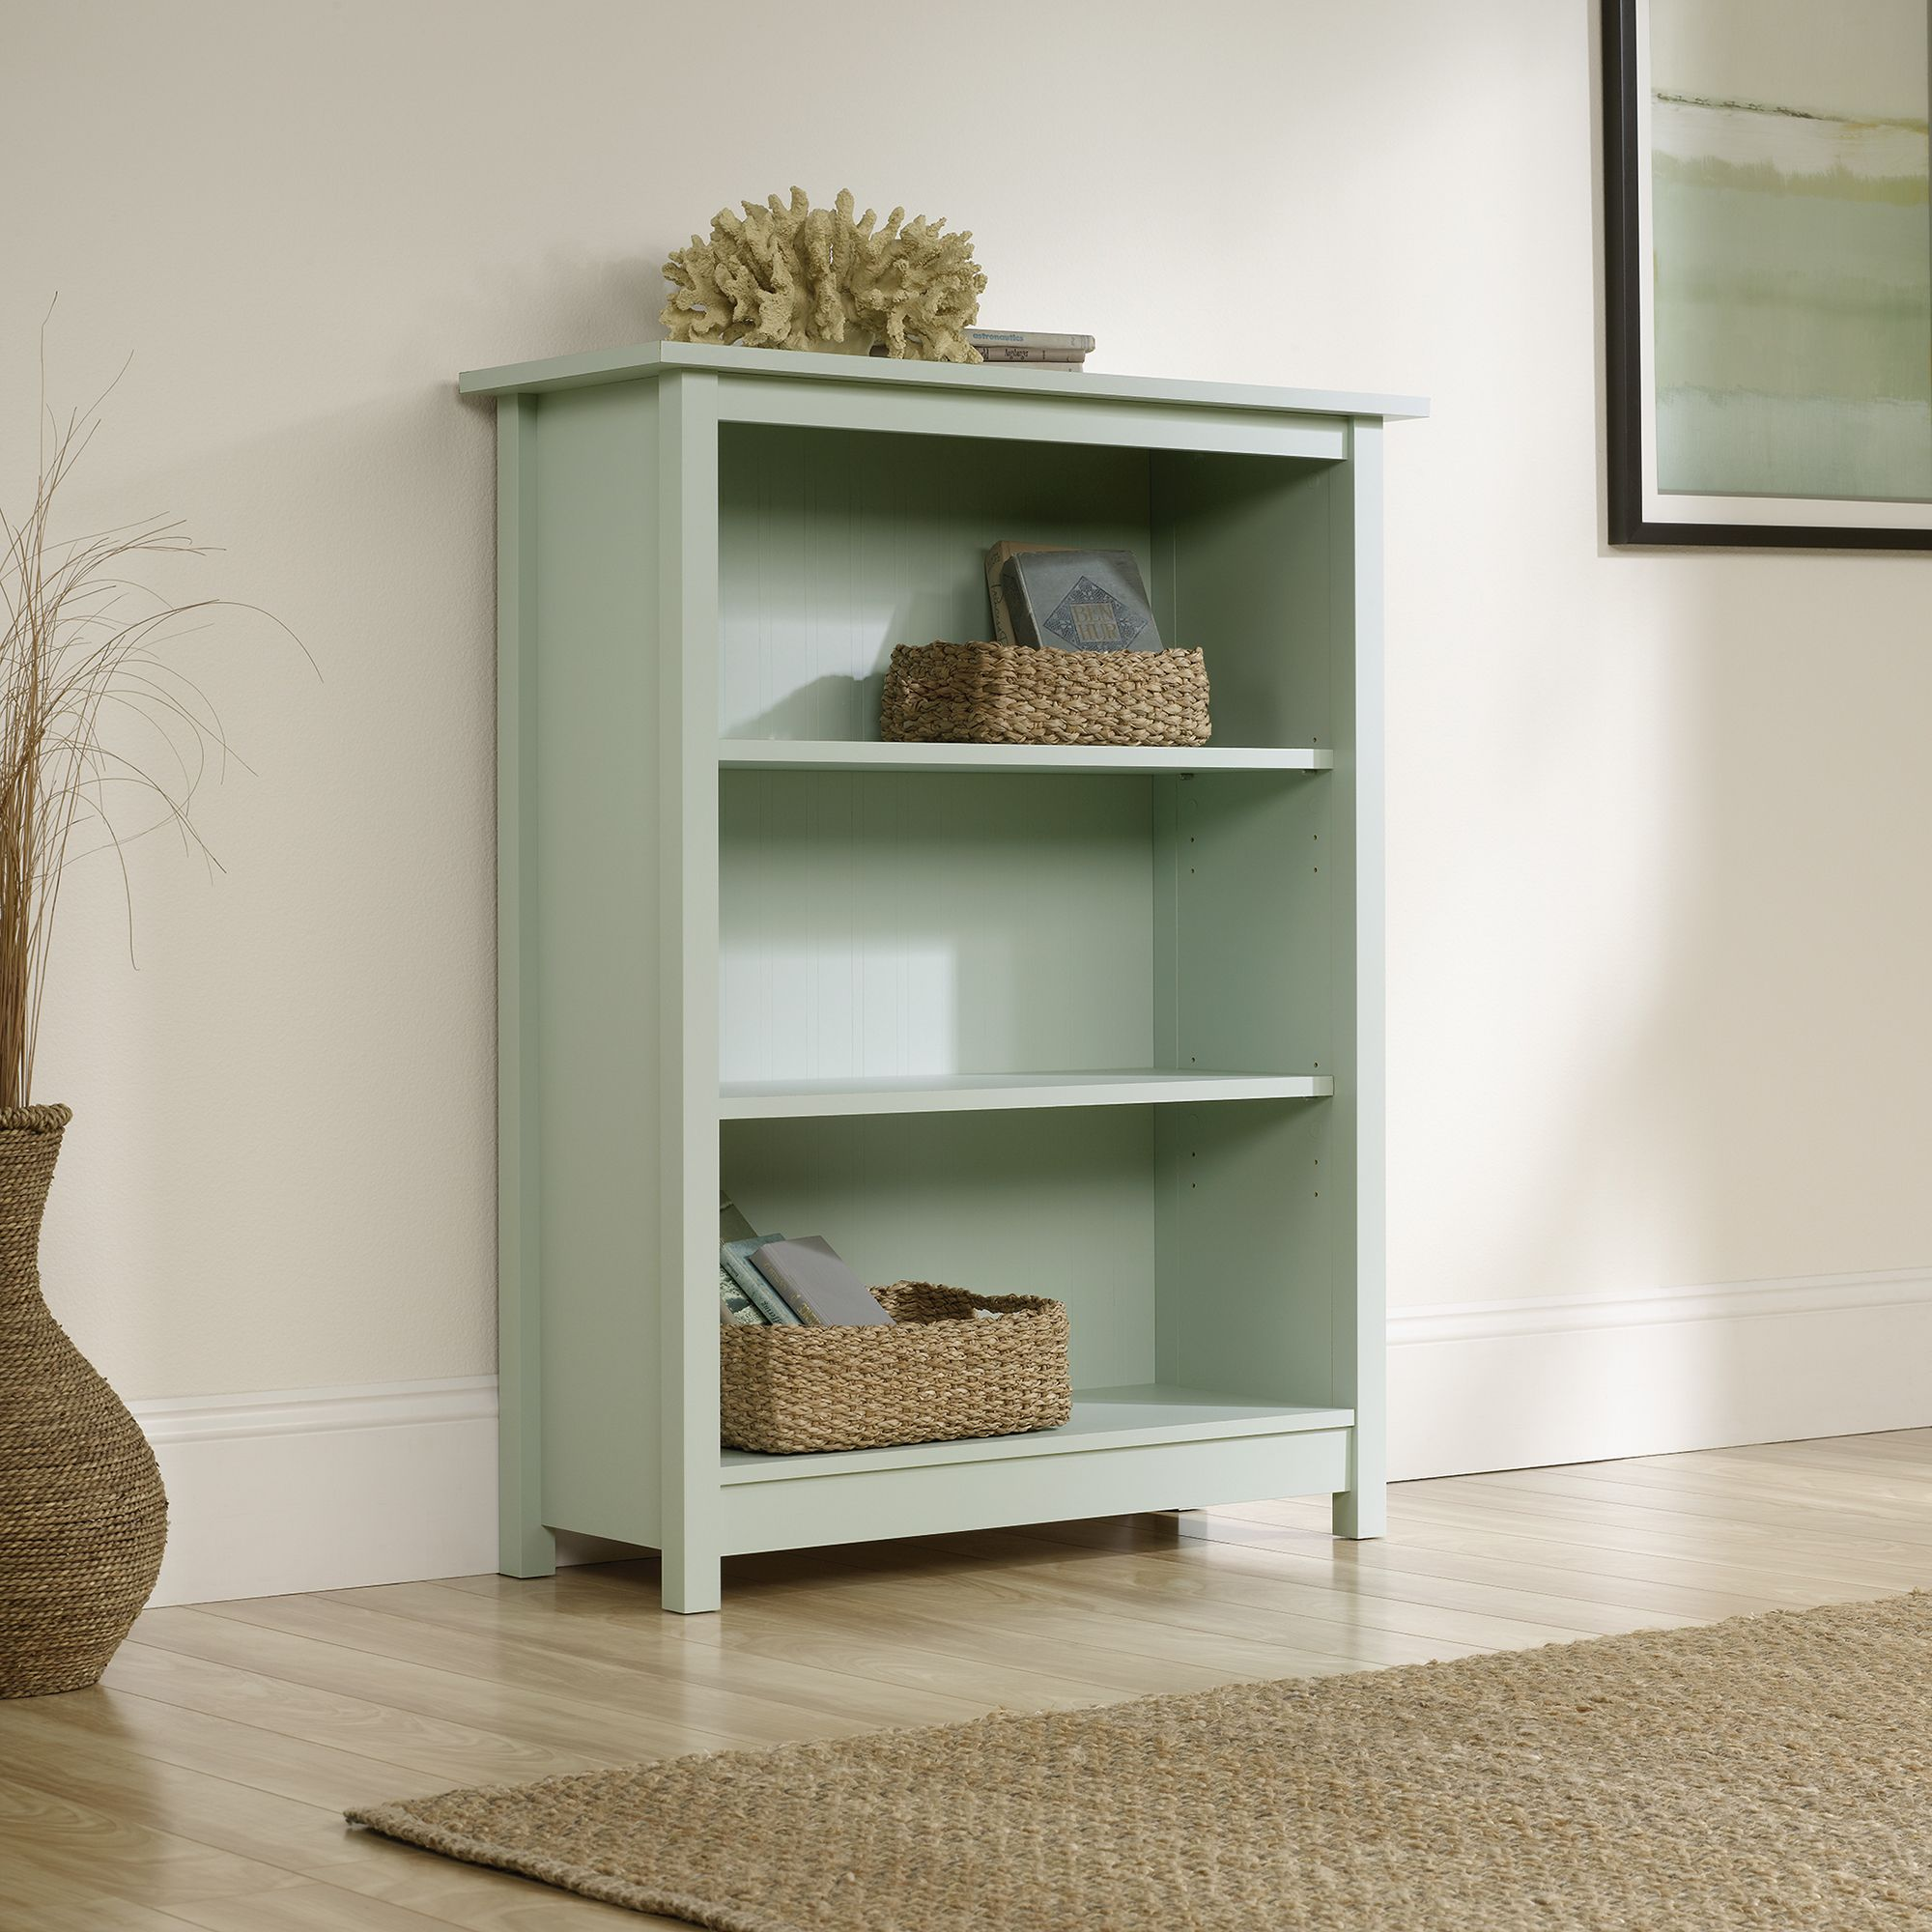 Sauder Original Cottage Bookcase Rainwater Finish Whimsical Without Being Fussy The Offers Simple Clean Lines